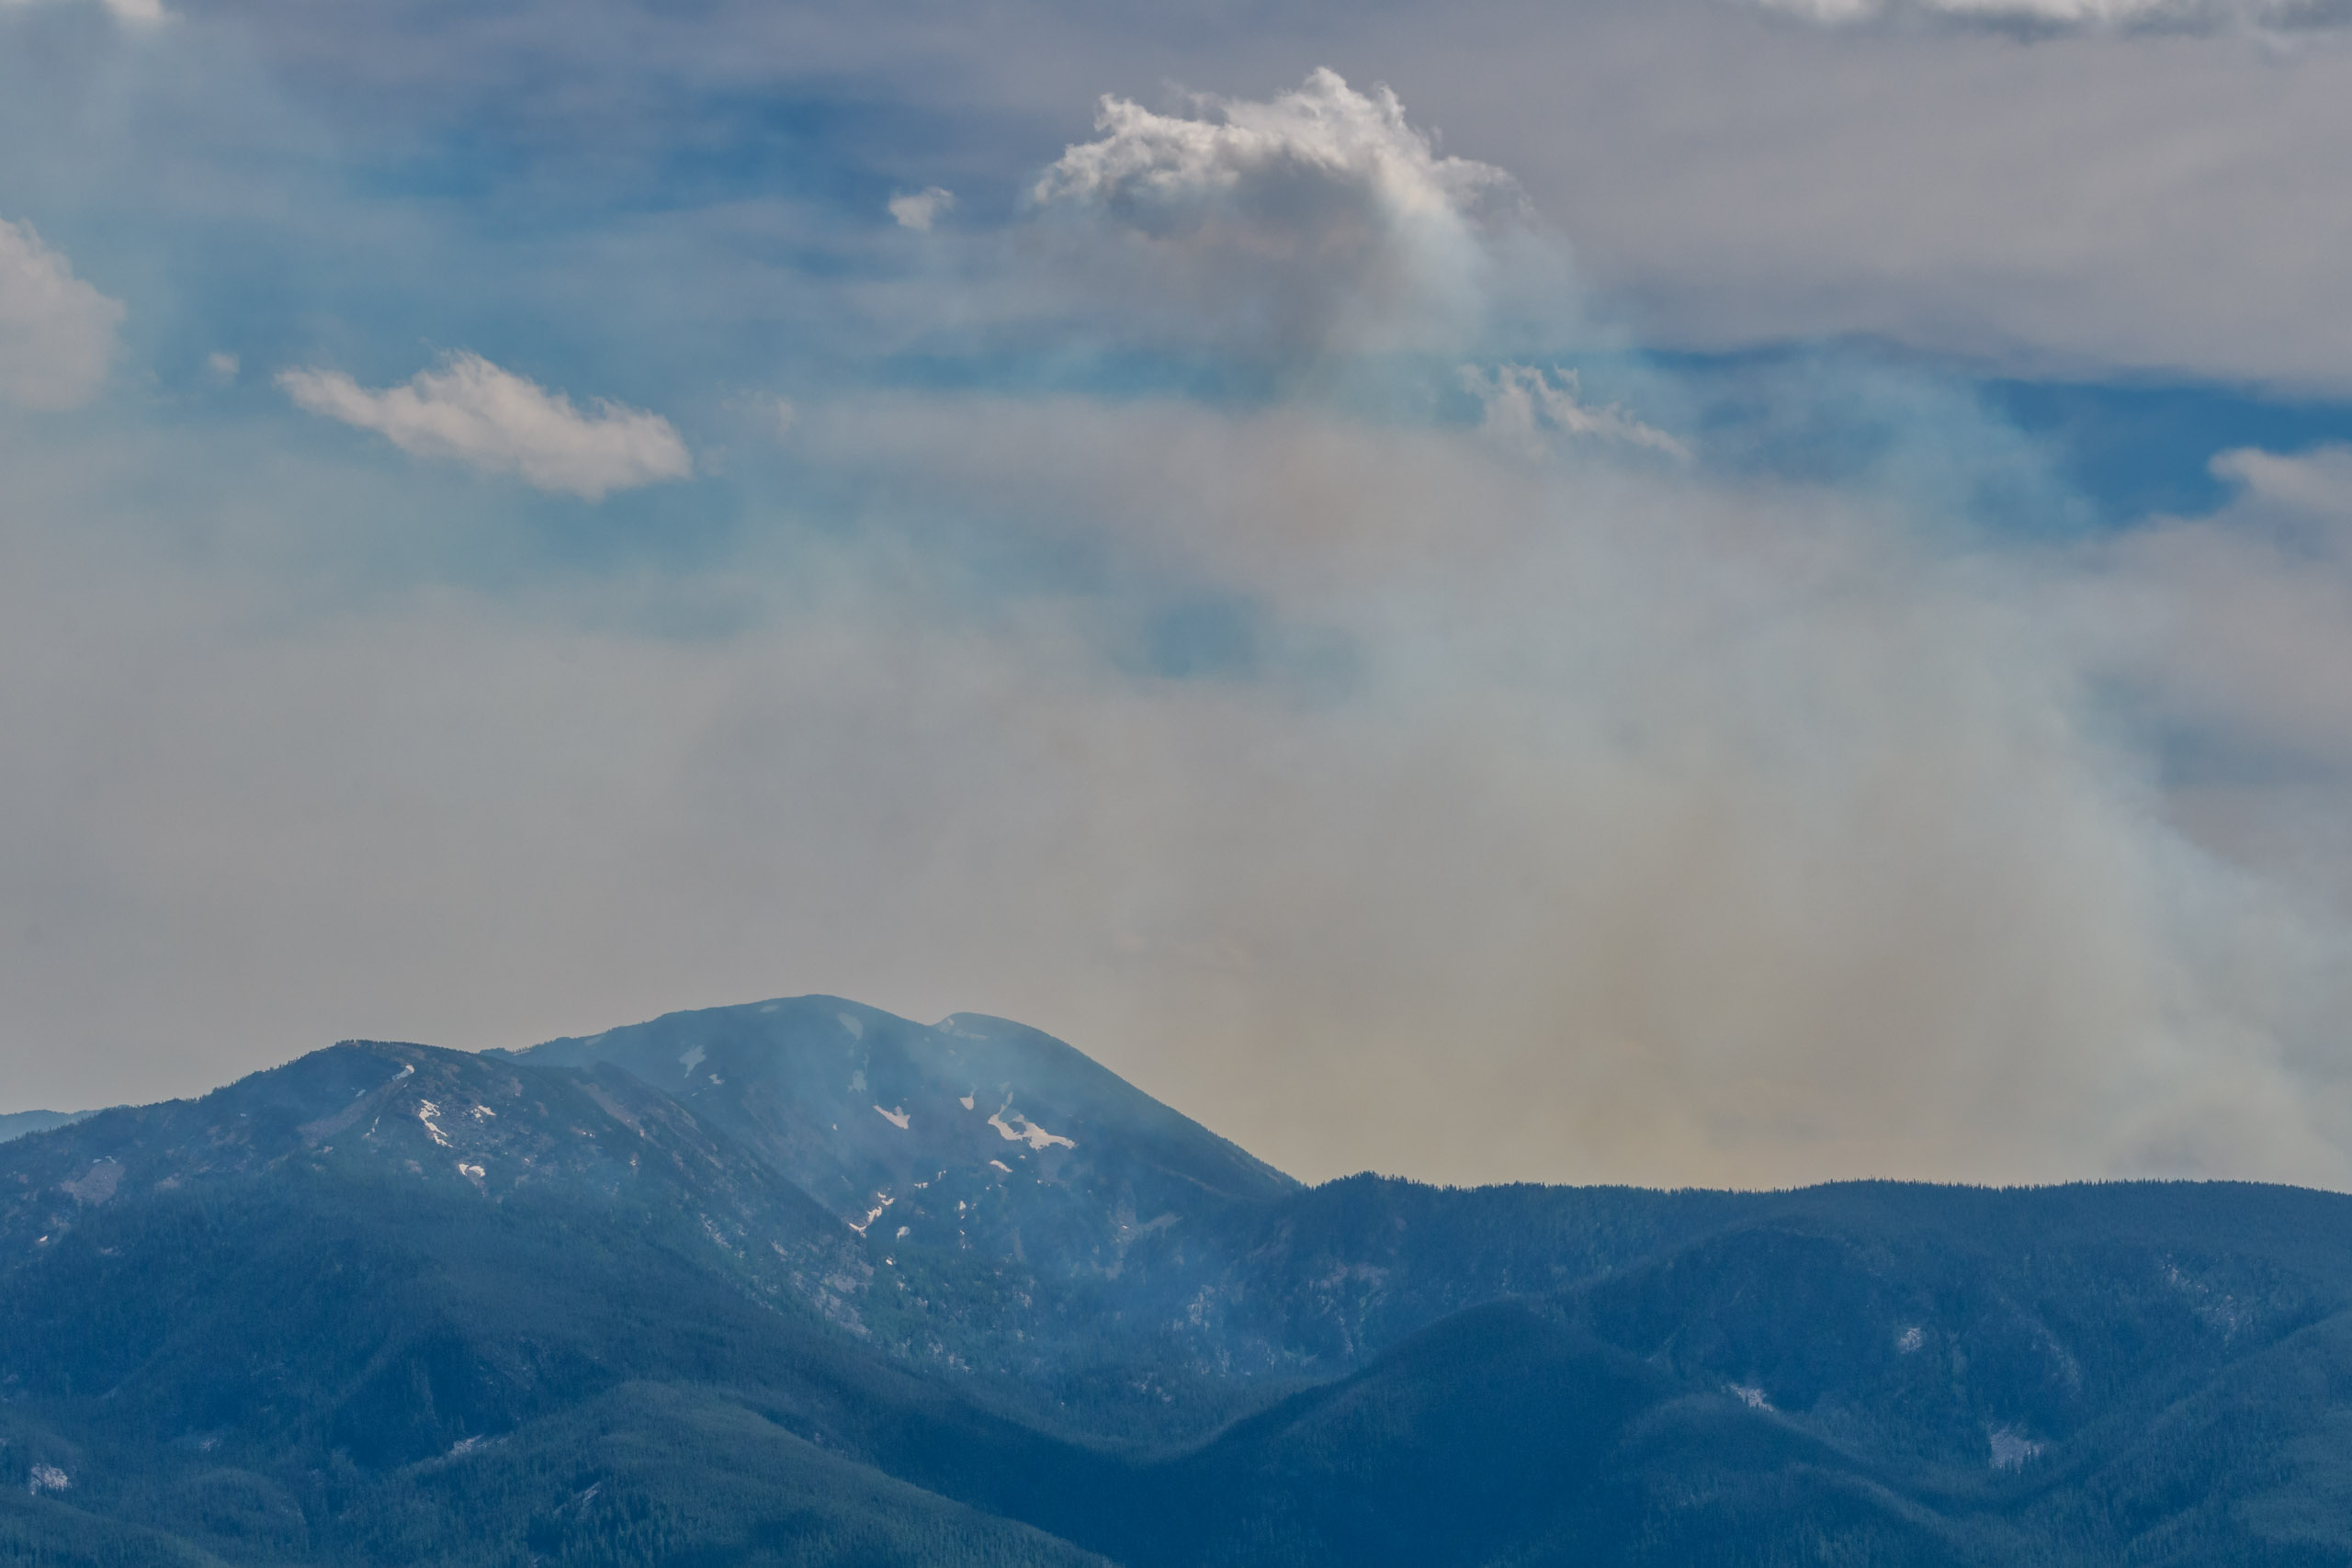 Looking across to the Lolo Peak fire